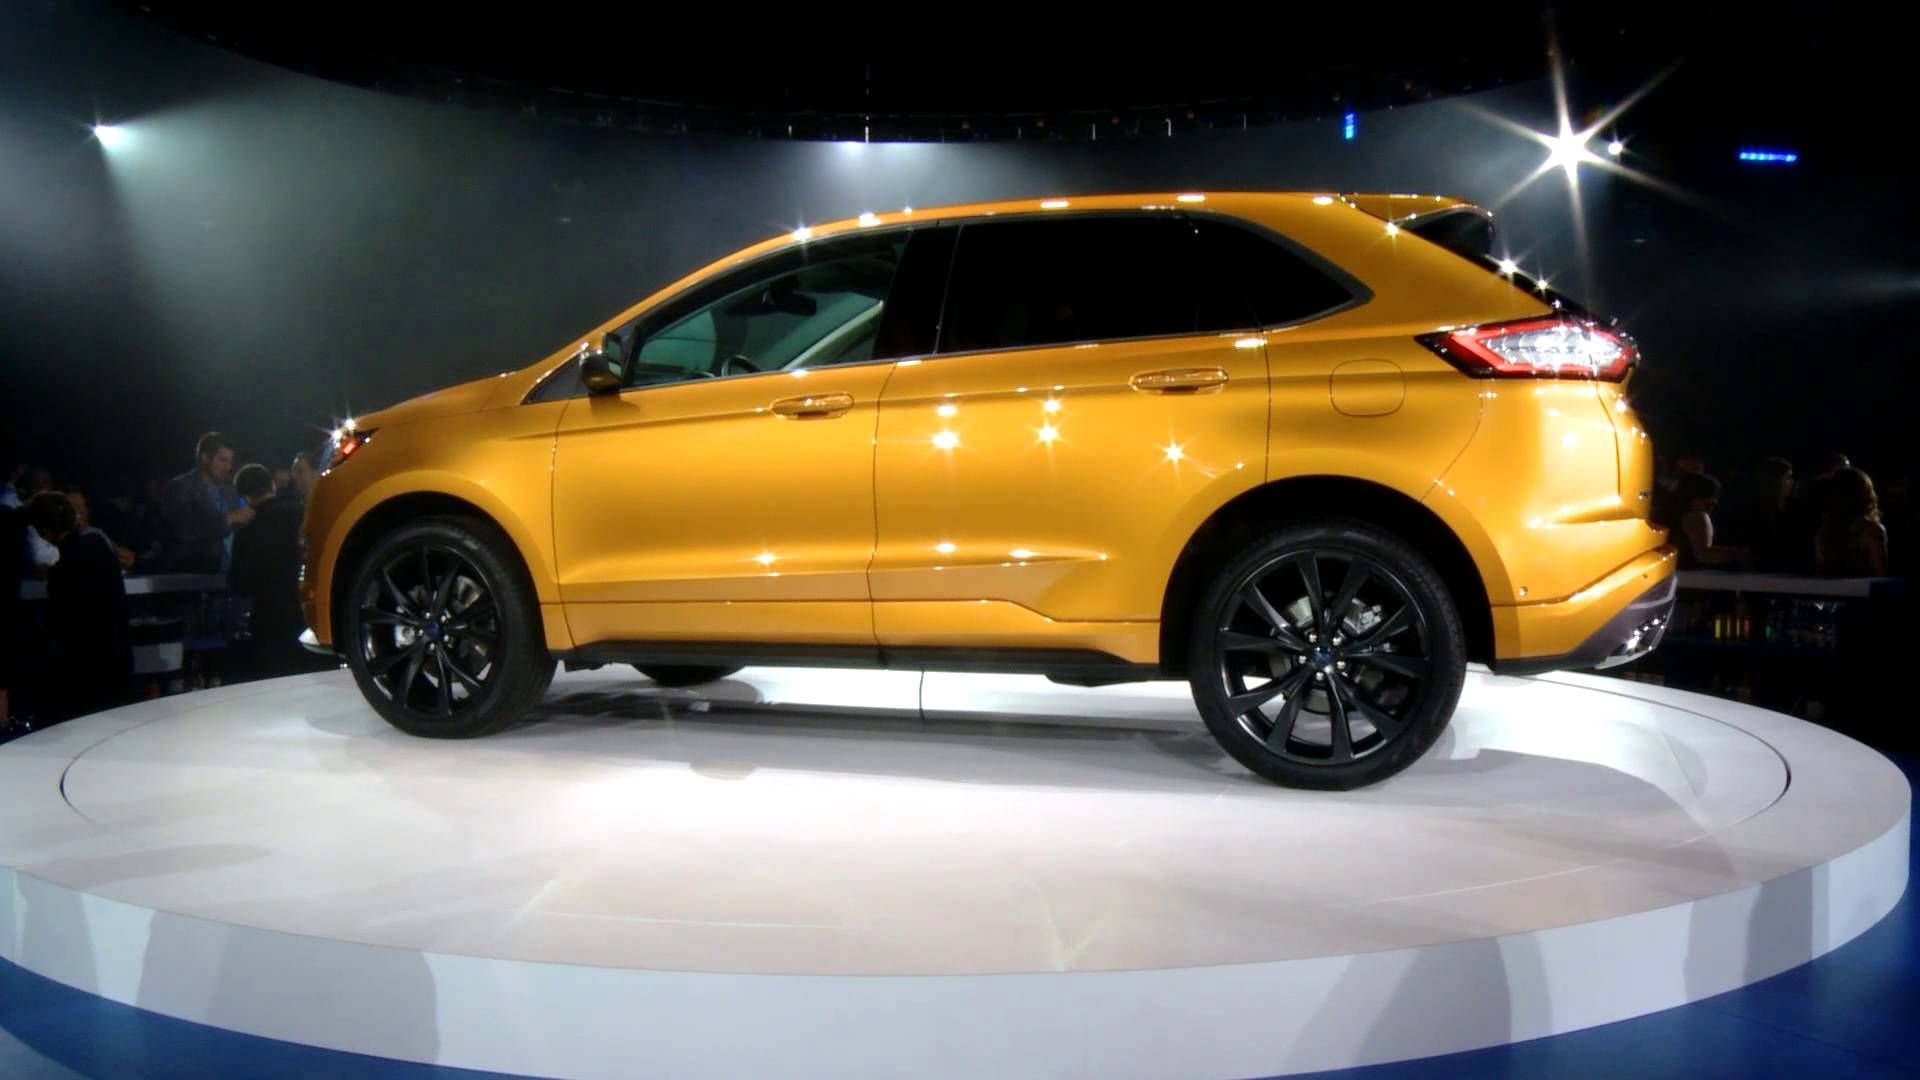 The allnew Ford Edge has finally been revealed and it